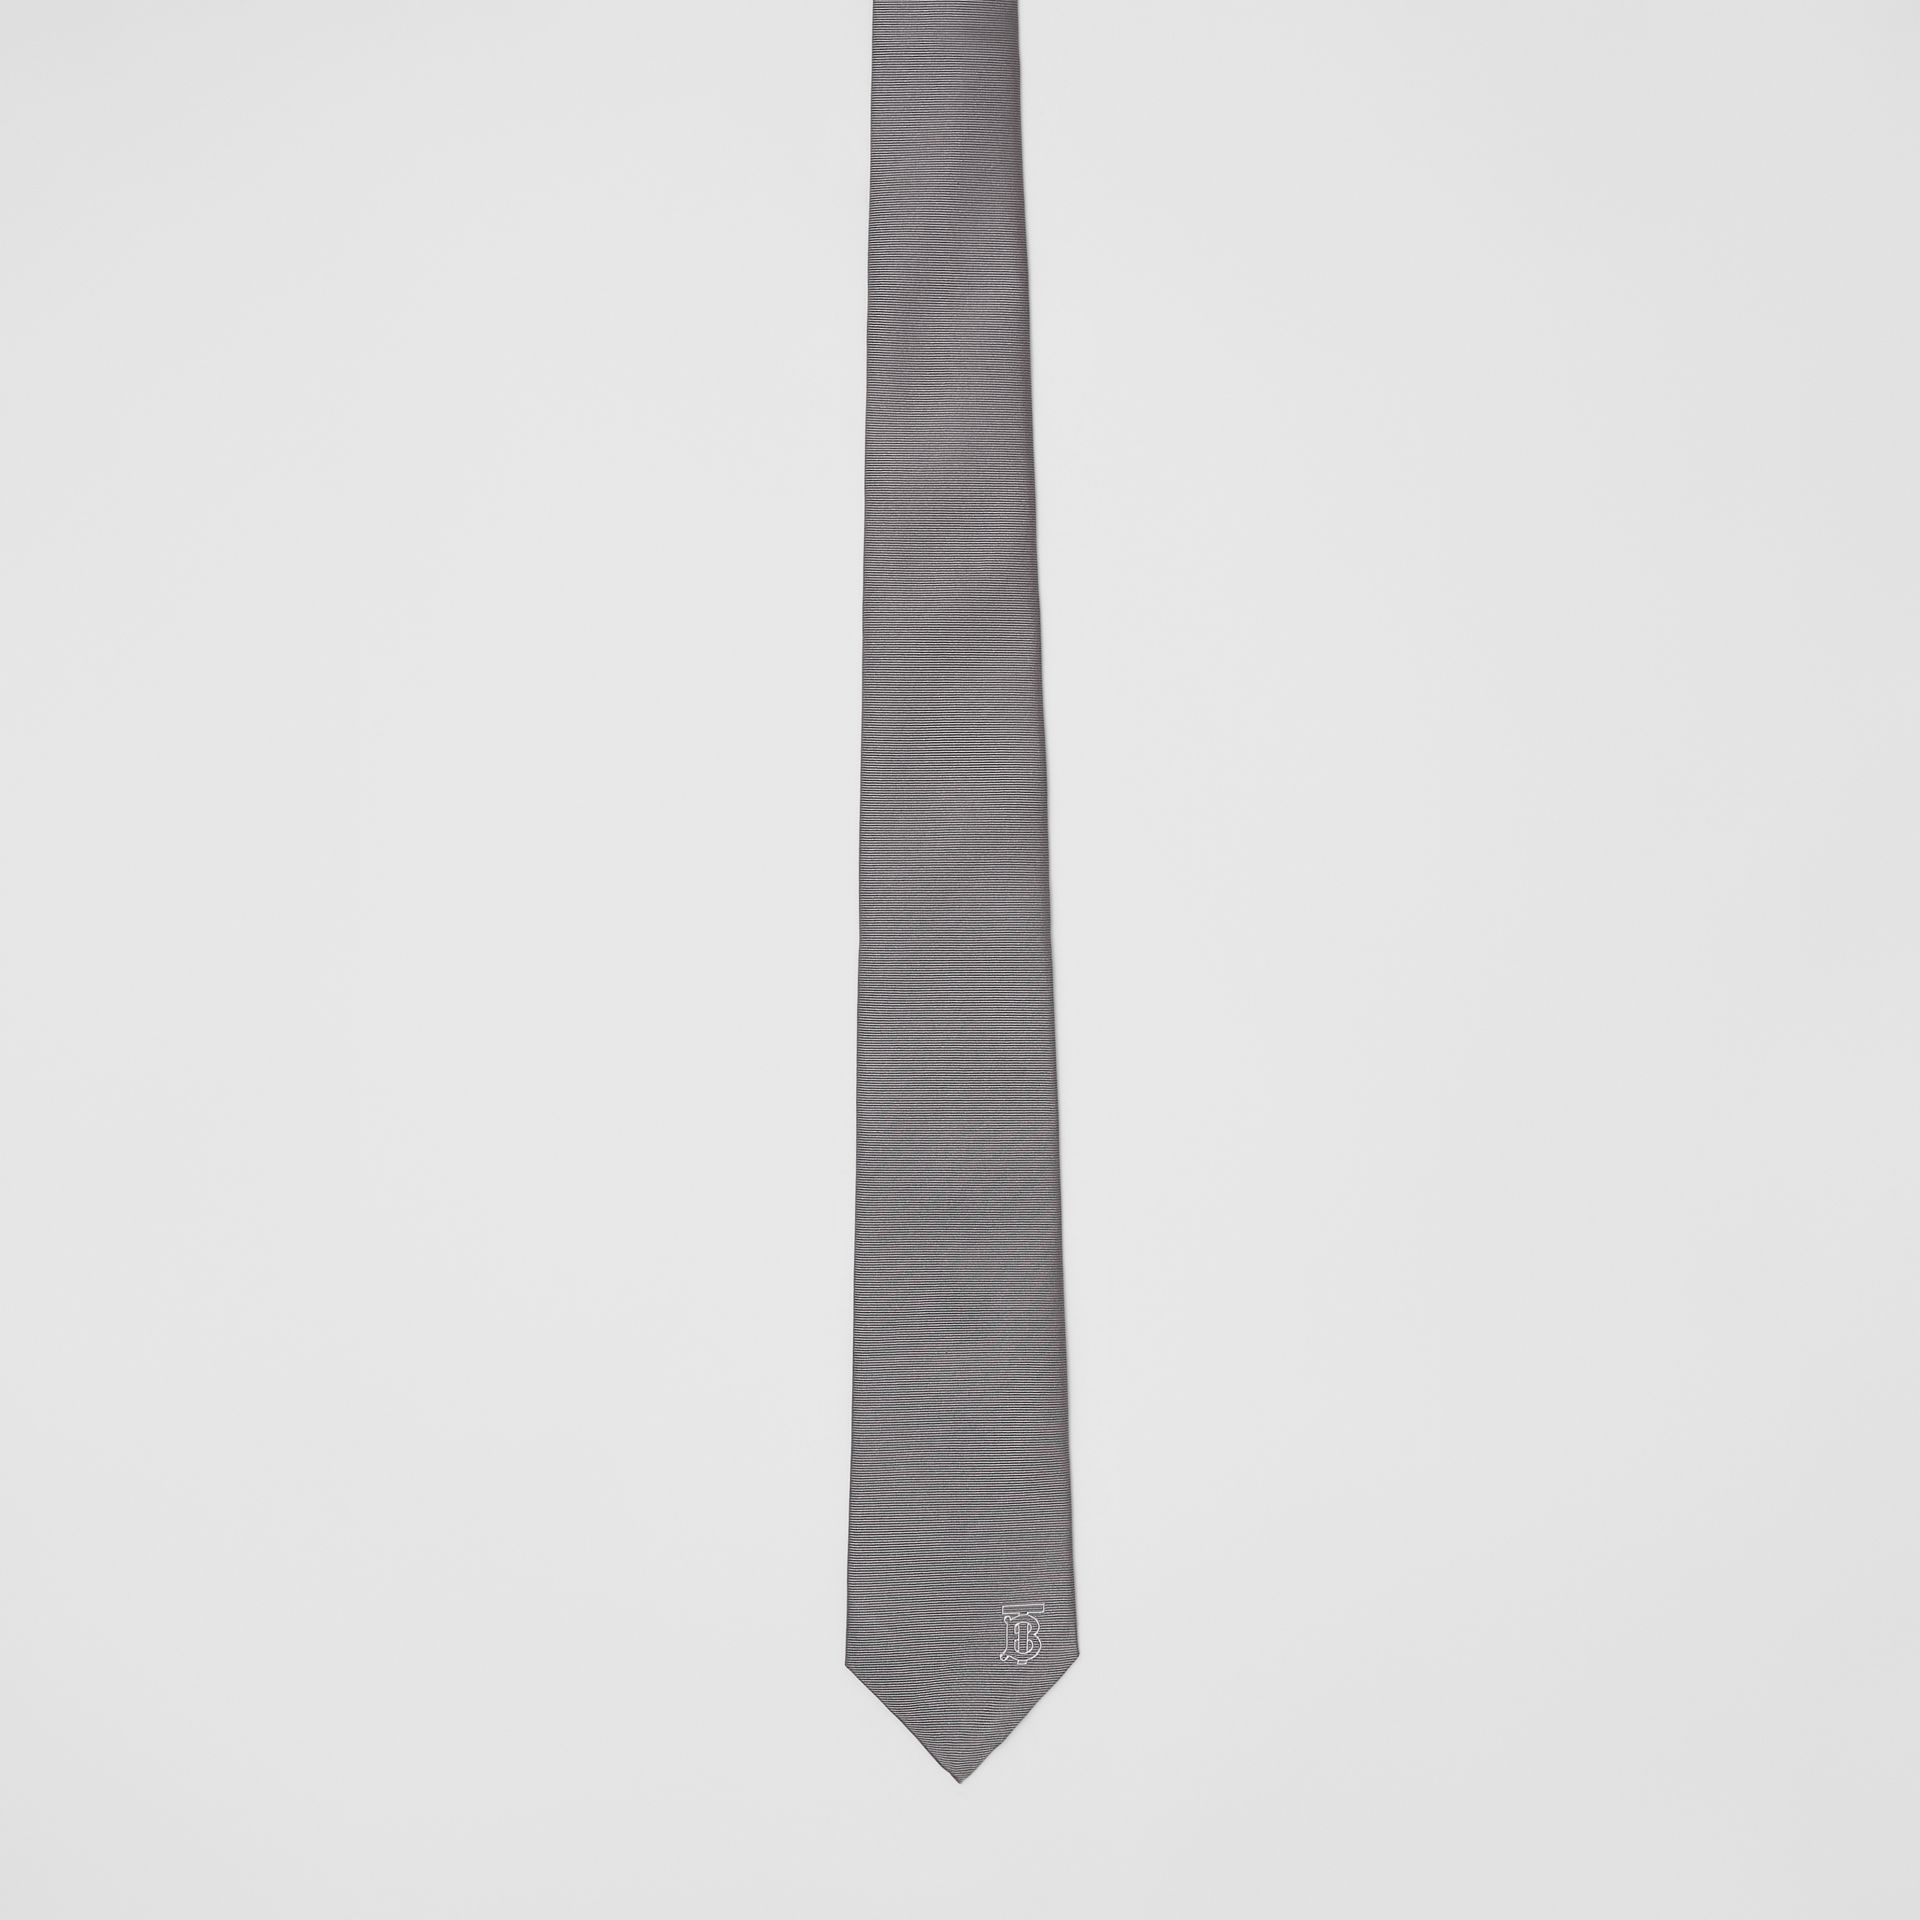 Classic Cut Monogram Motif Silk Tie in Mid Grey - Men | Burberry - gallery image 2